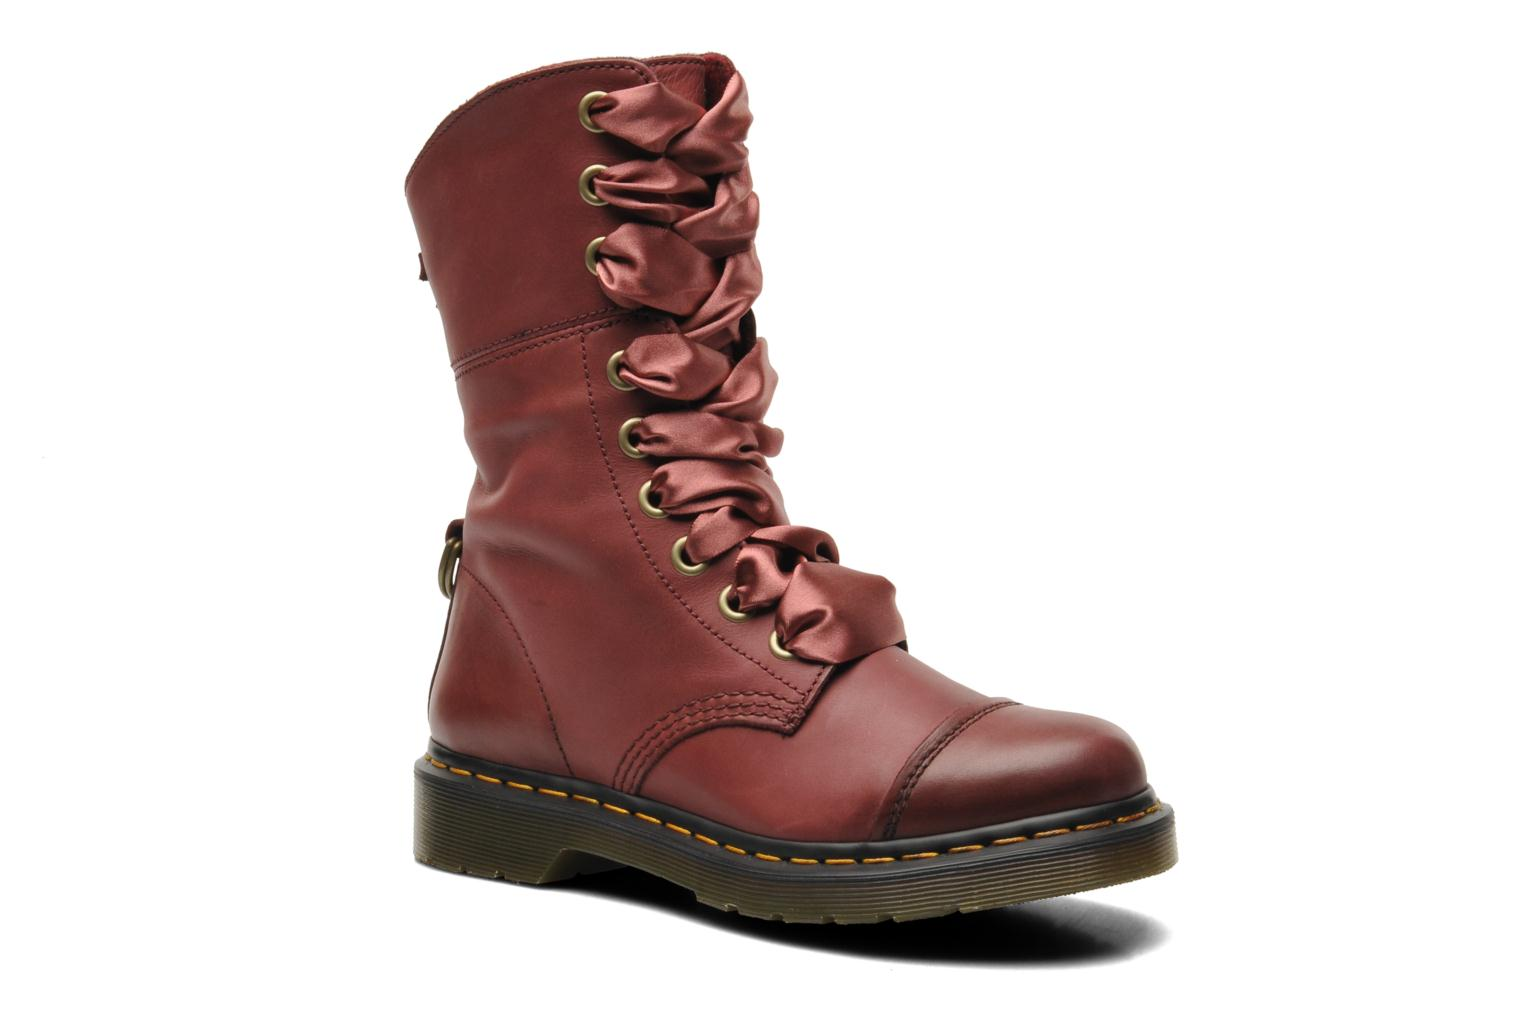 dr martens aimilita bordeaux bottines et boots chez sarenza 222219. Black Bedroom Furniture Sets. Home Design Ideas